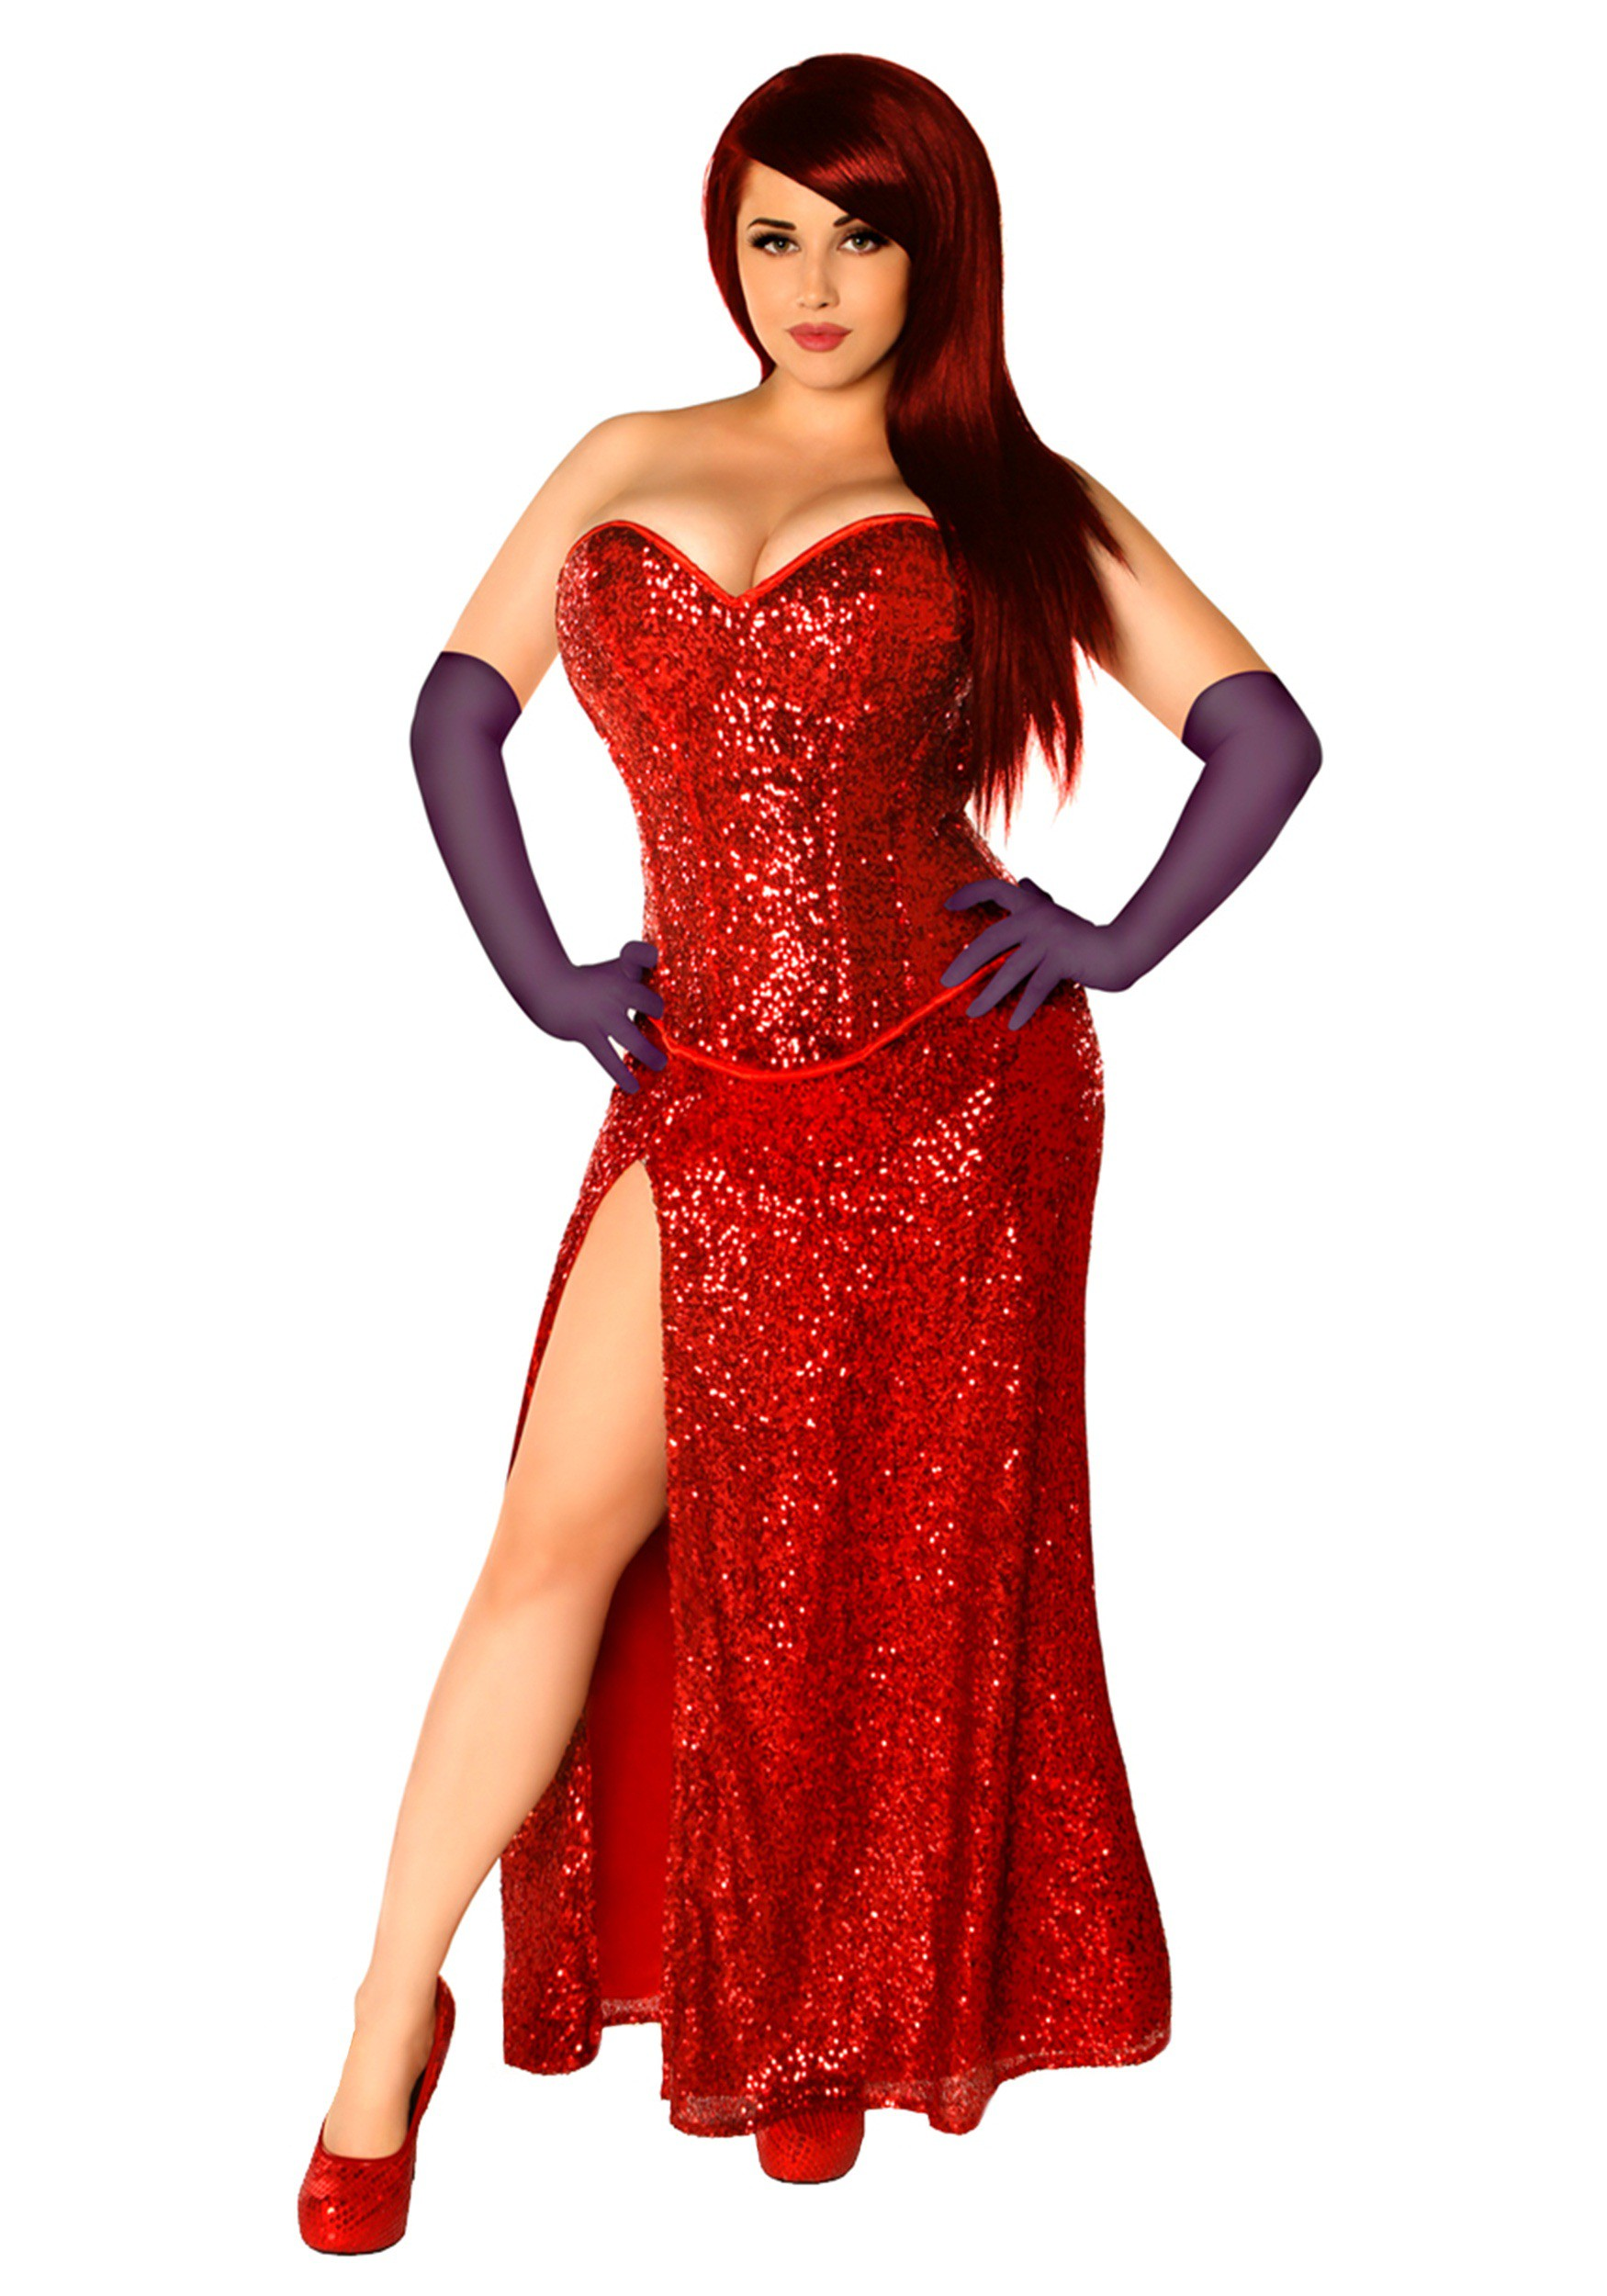 Women's Miss Jessica Corset Costume